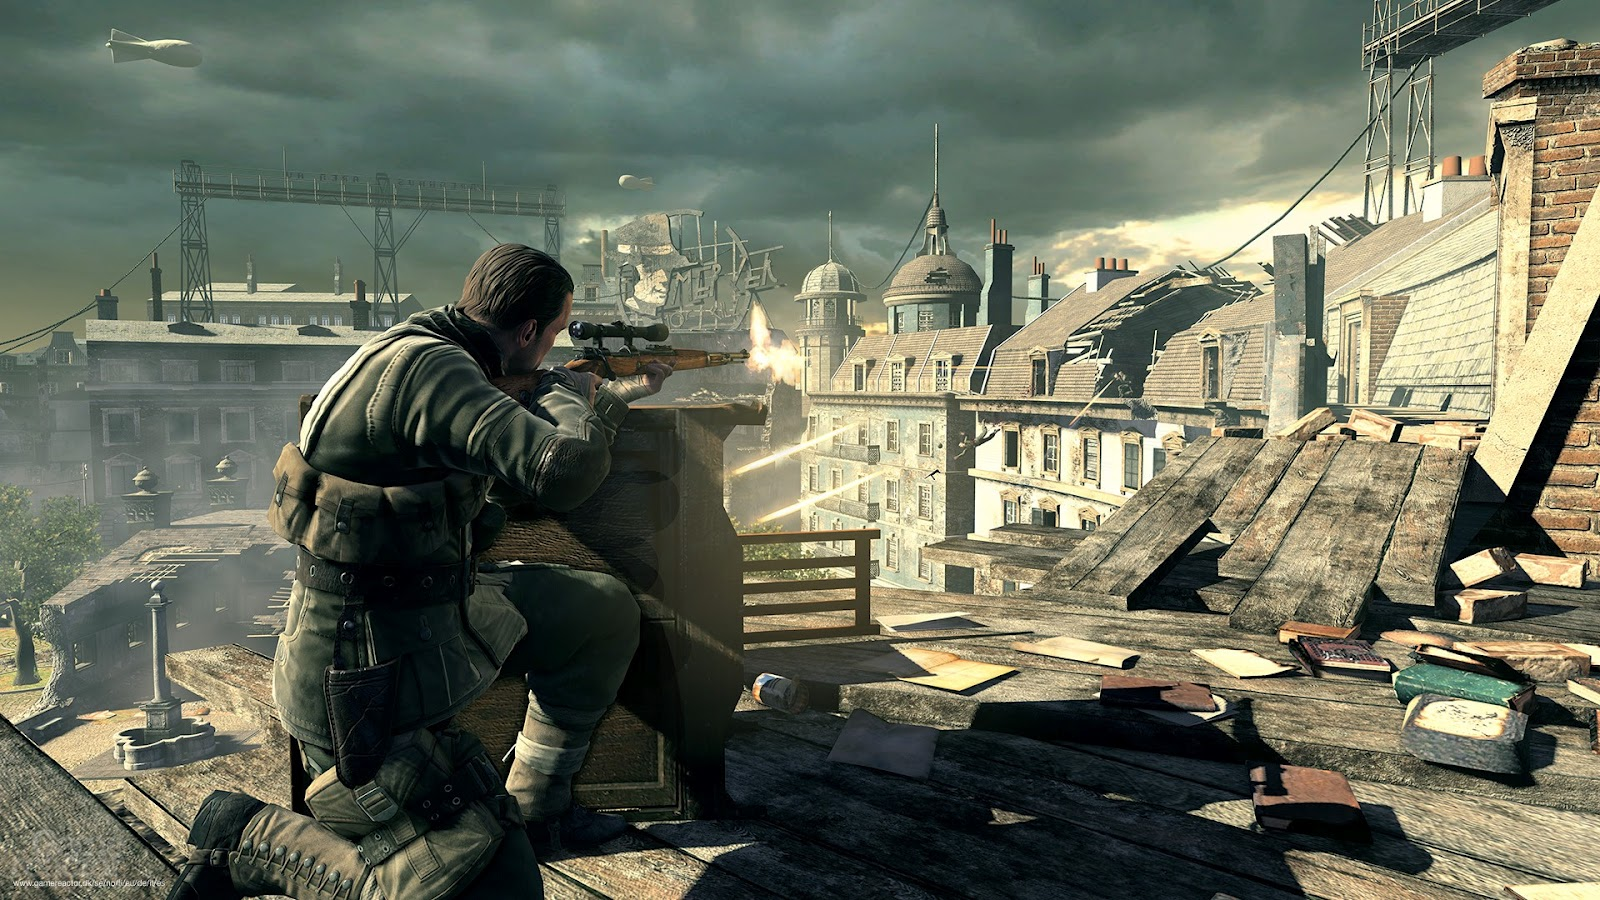 SniperEliteV2wallpapers2 Sniper Elite V2 Full HD Wallpapers 1080p 1600x900